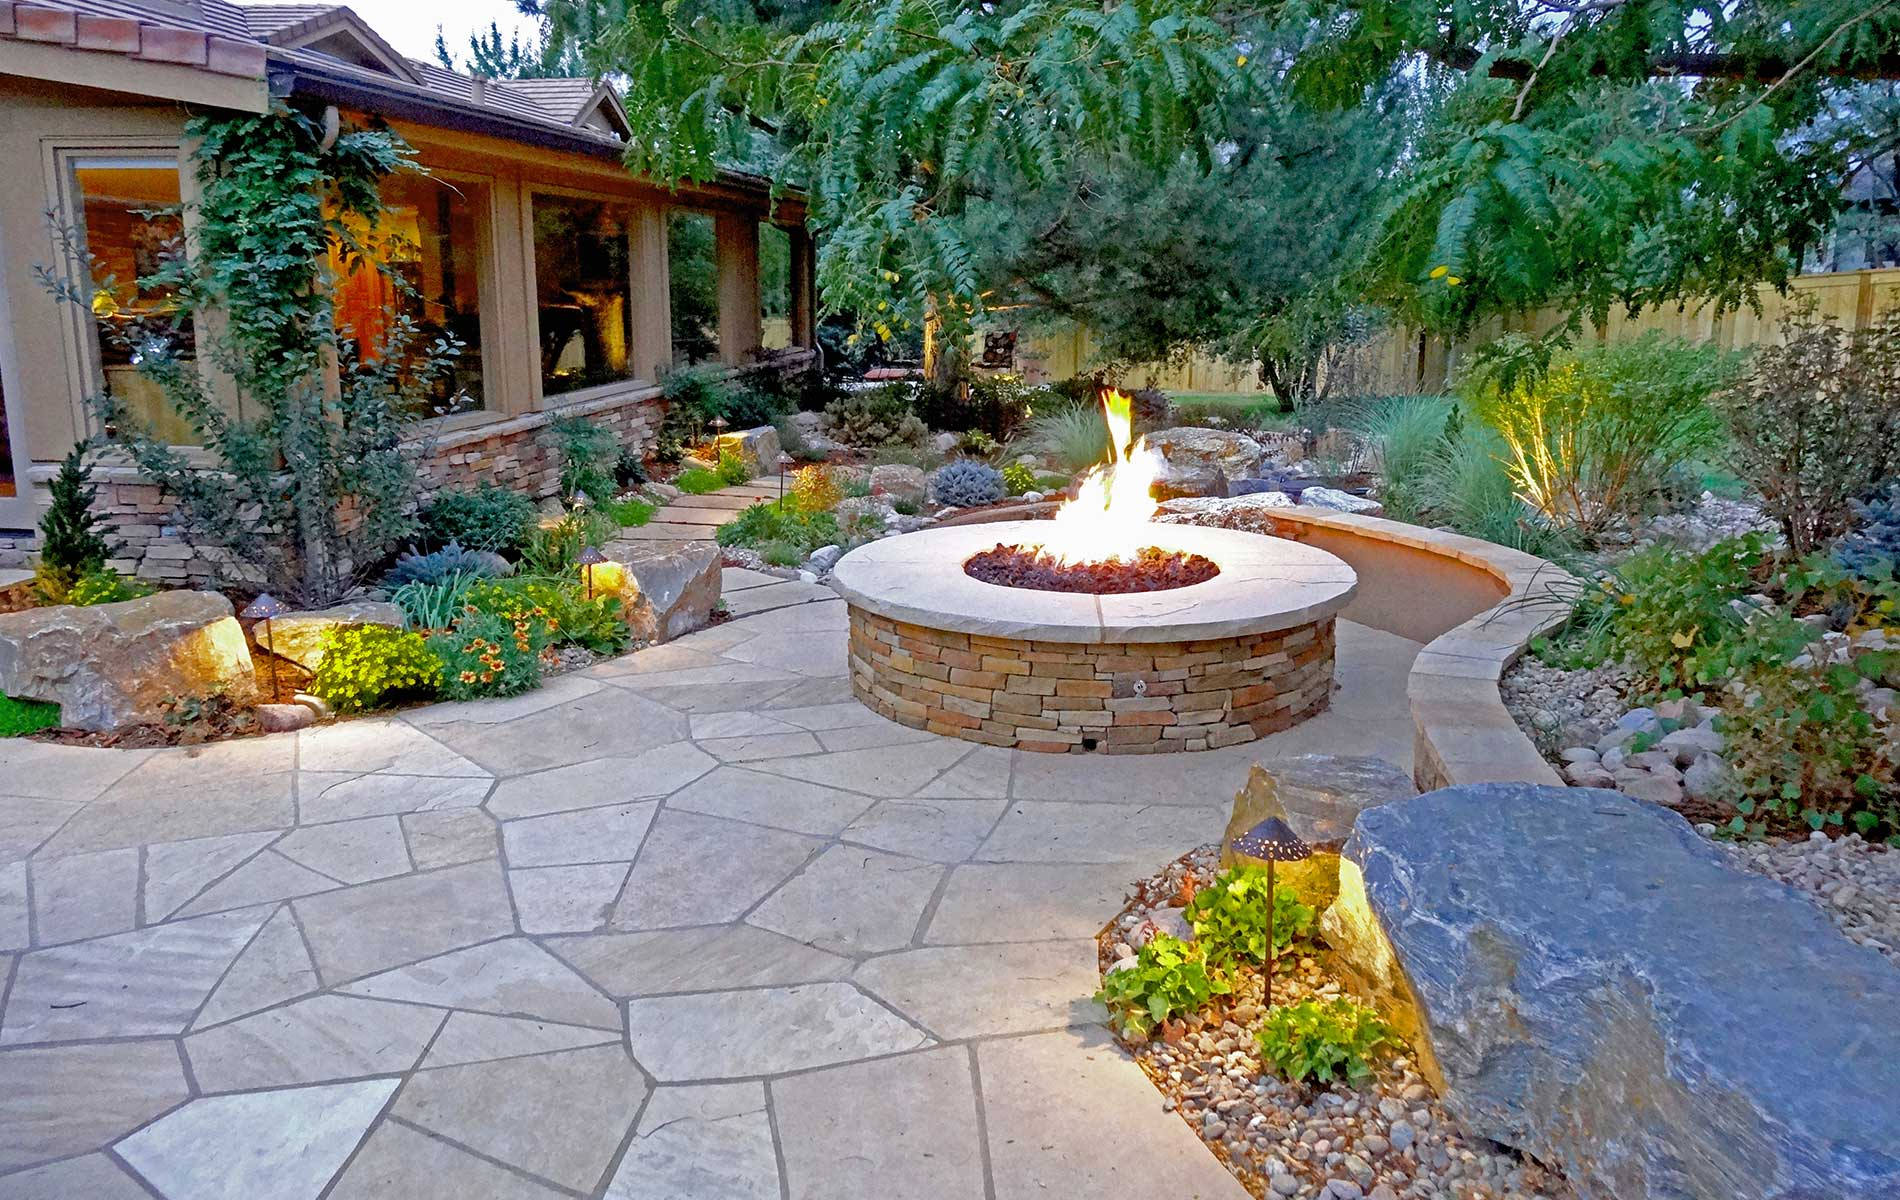 Best Stone Patio Ideas, Designs and Installation Tips ... on Backyard Masonry Ideas id=91279